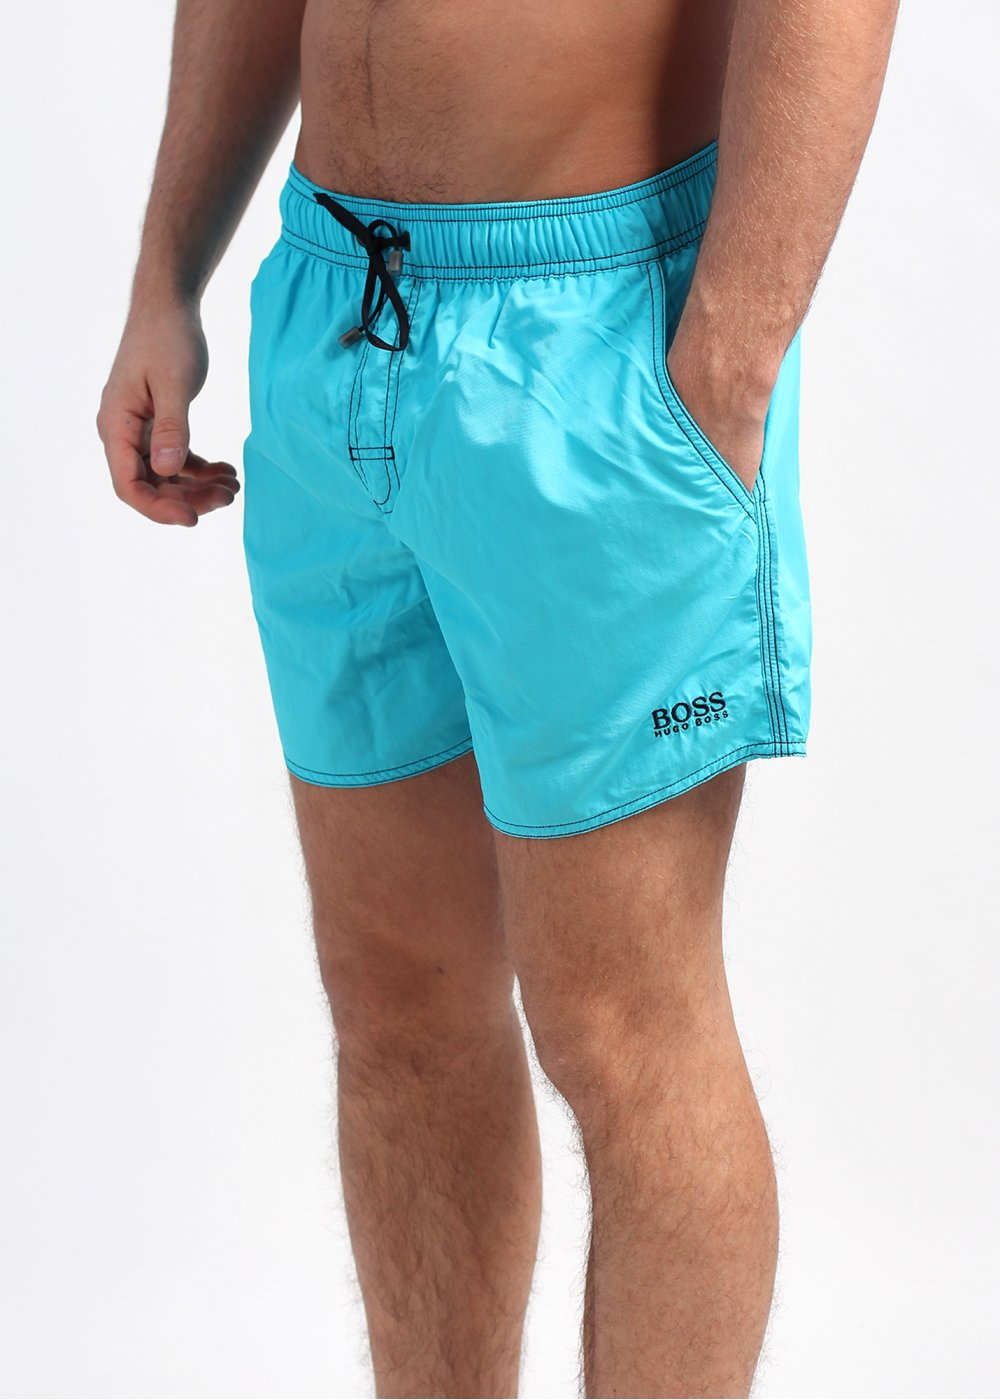 b2d6d4ae2 Hugo Boss Black Lobster Swim Shorts - Light Blue